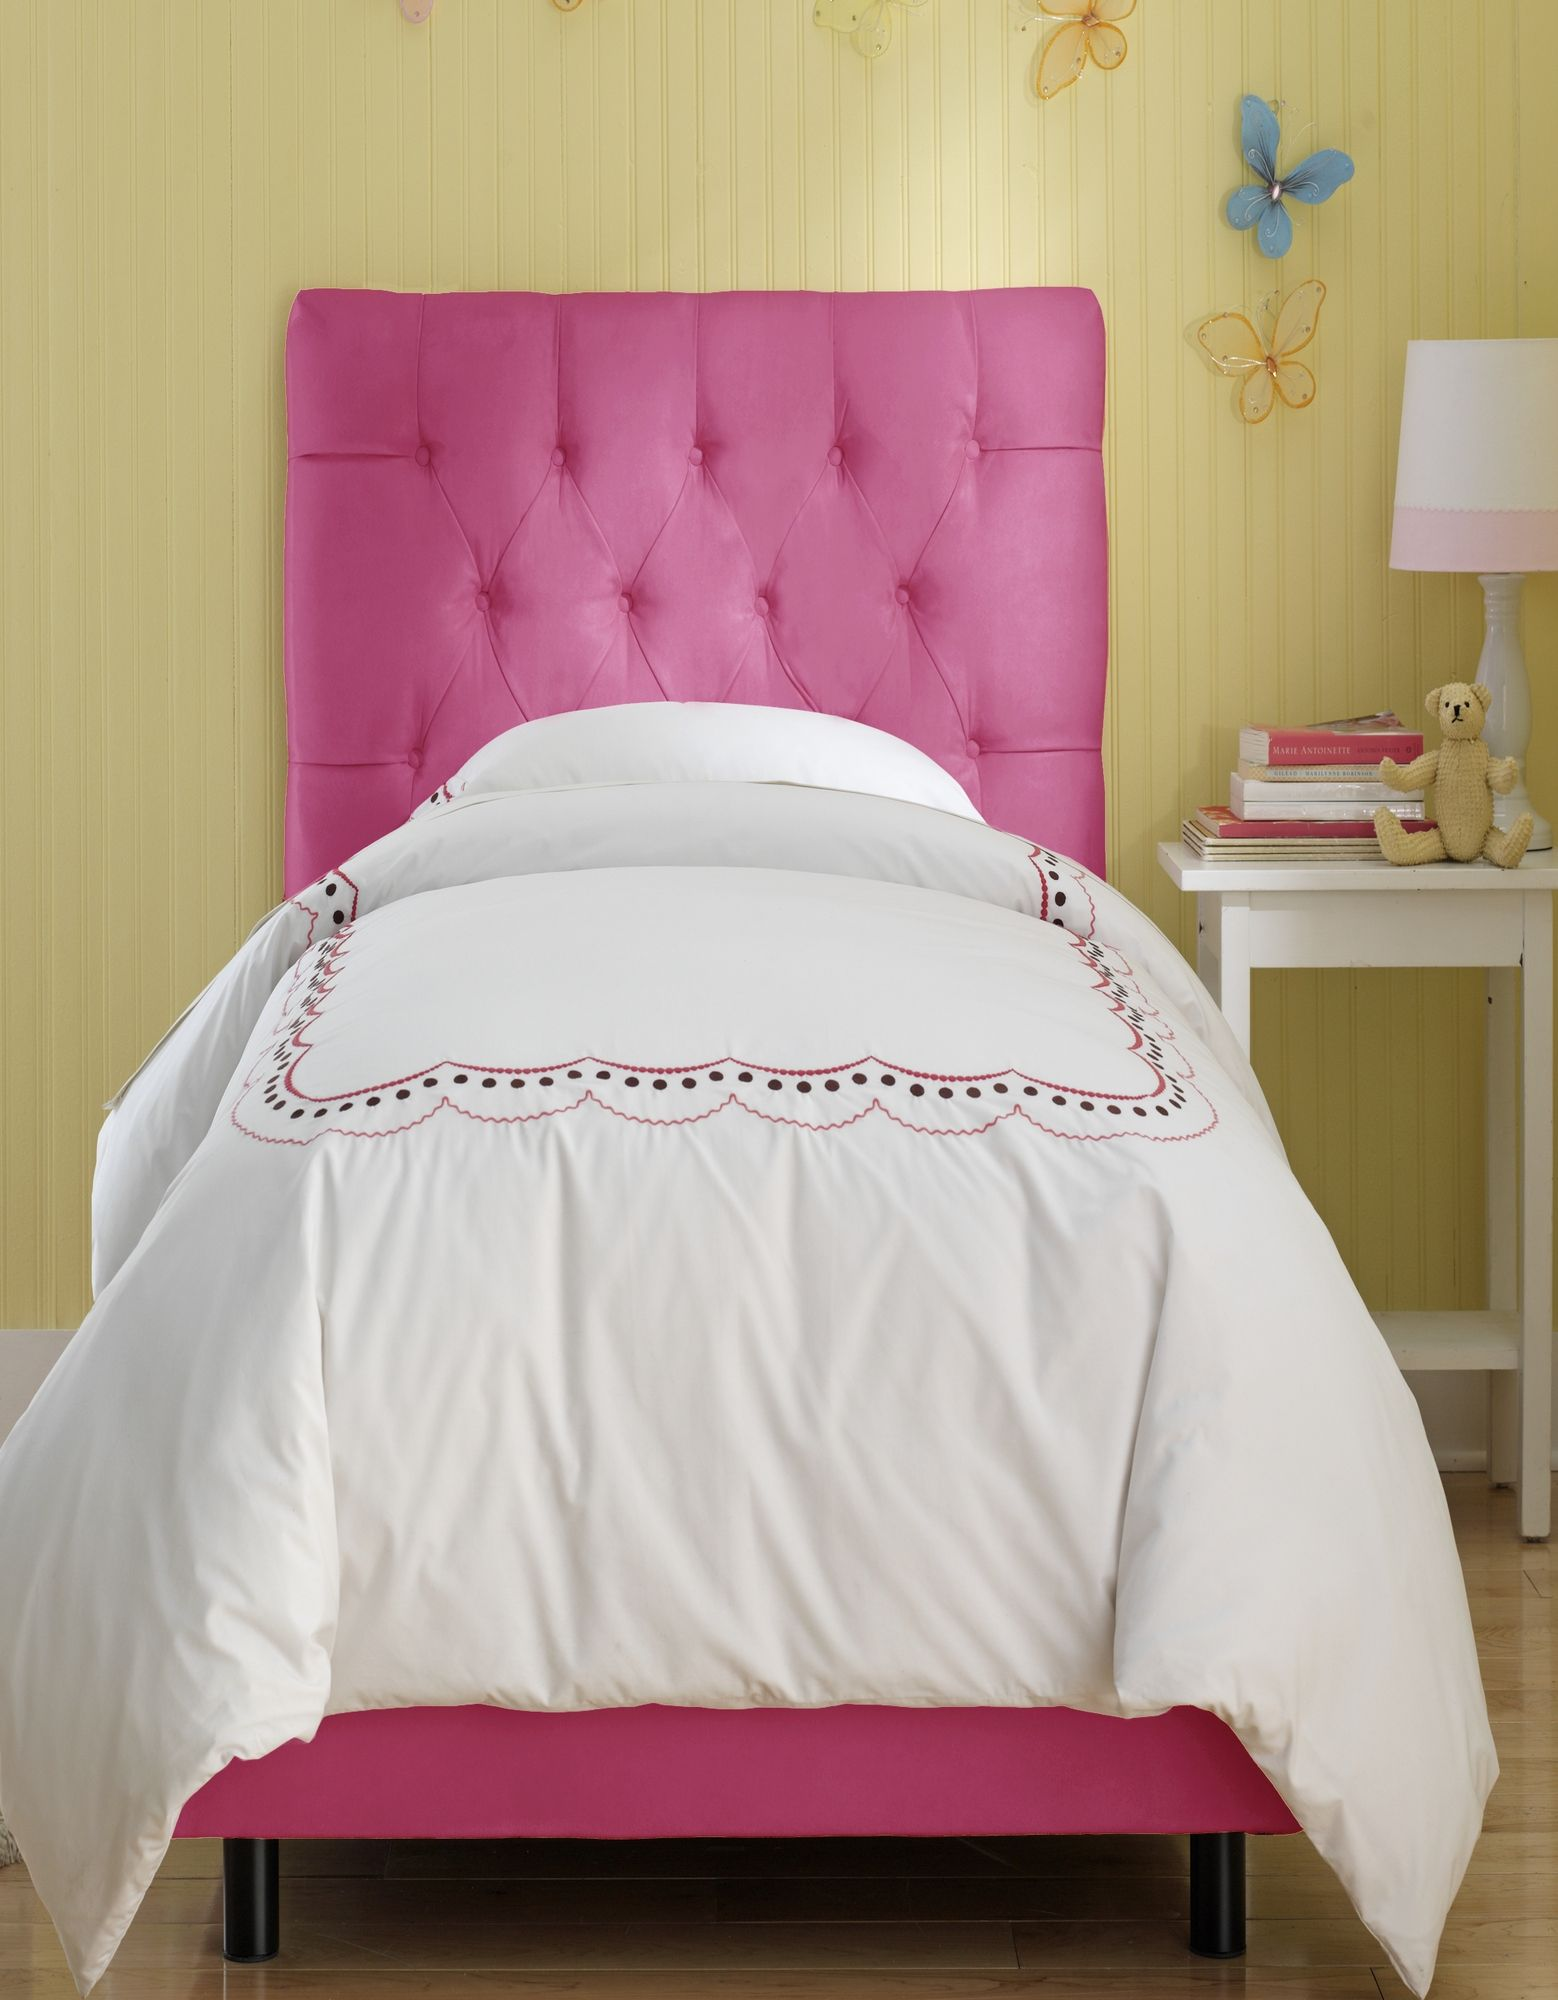 Skyline Furniture Tufted Micro Suede Youth Bed In Hot Pink